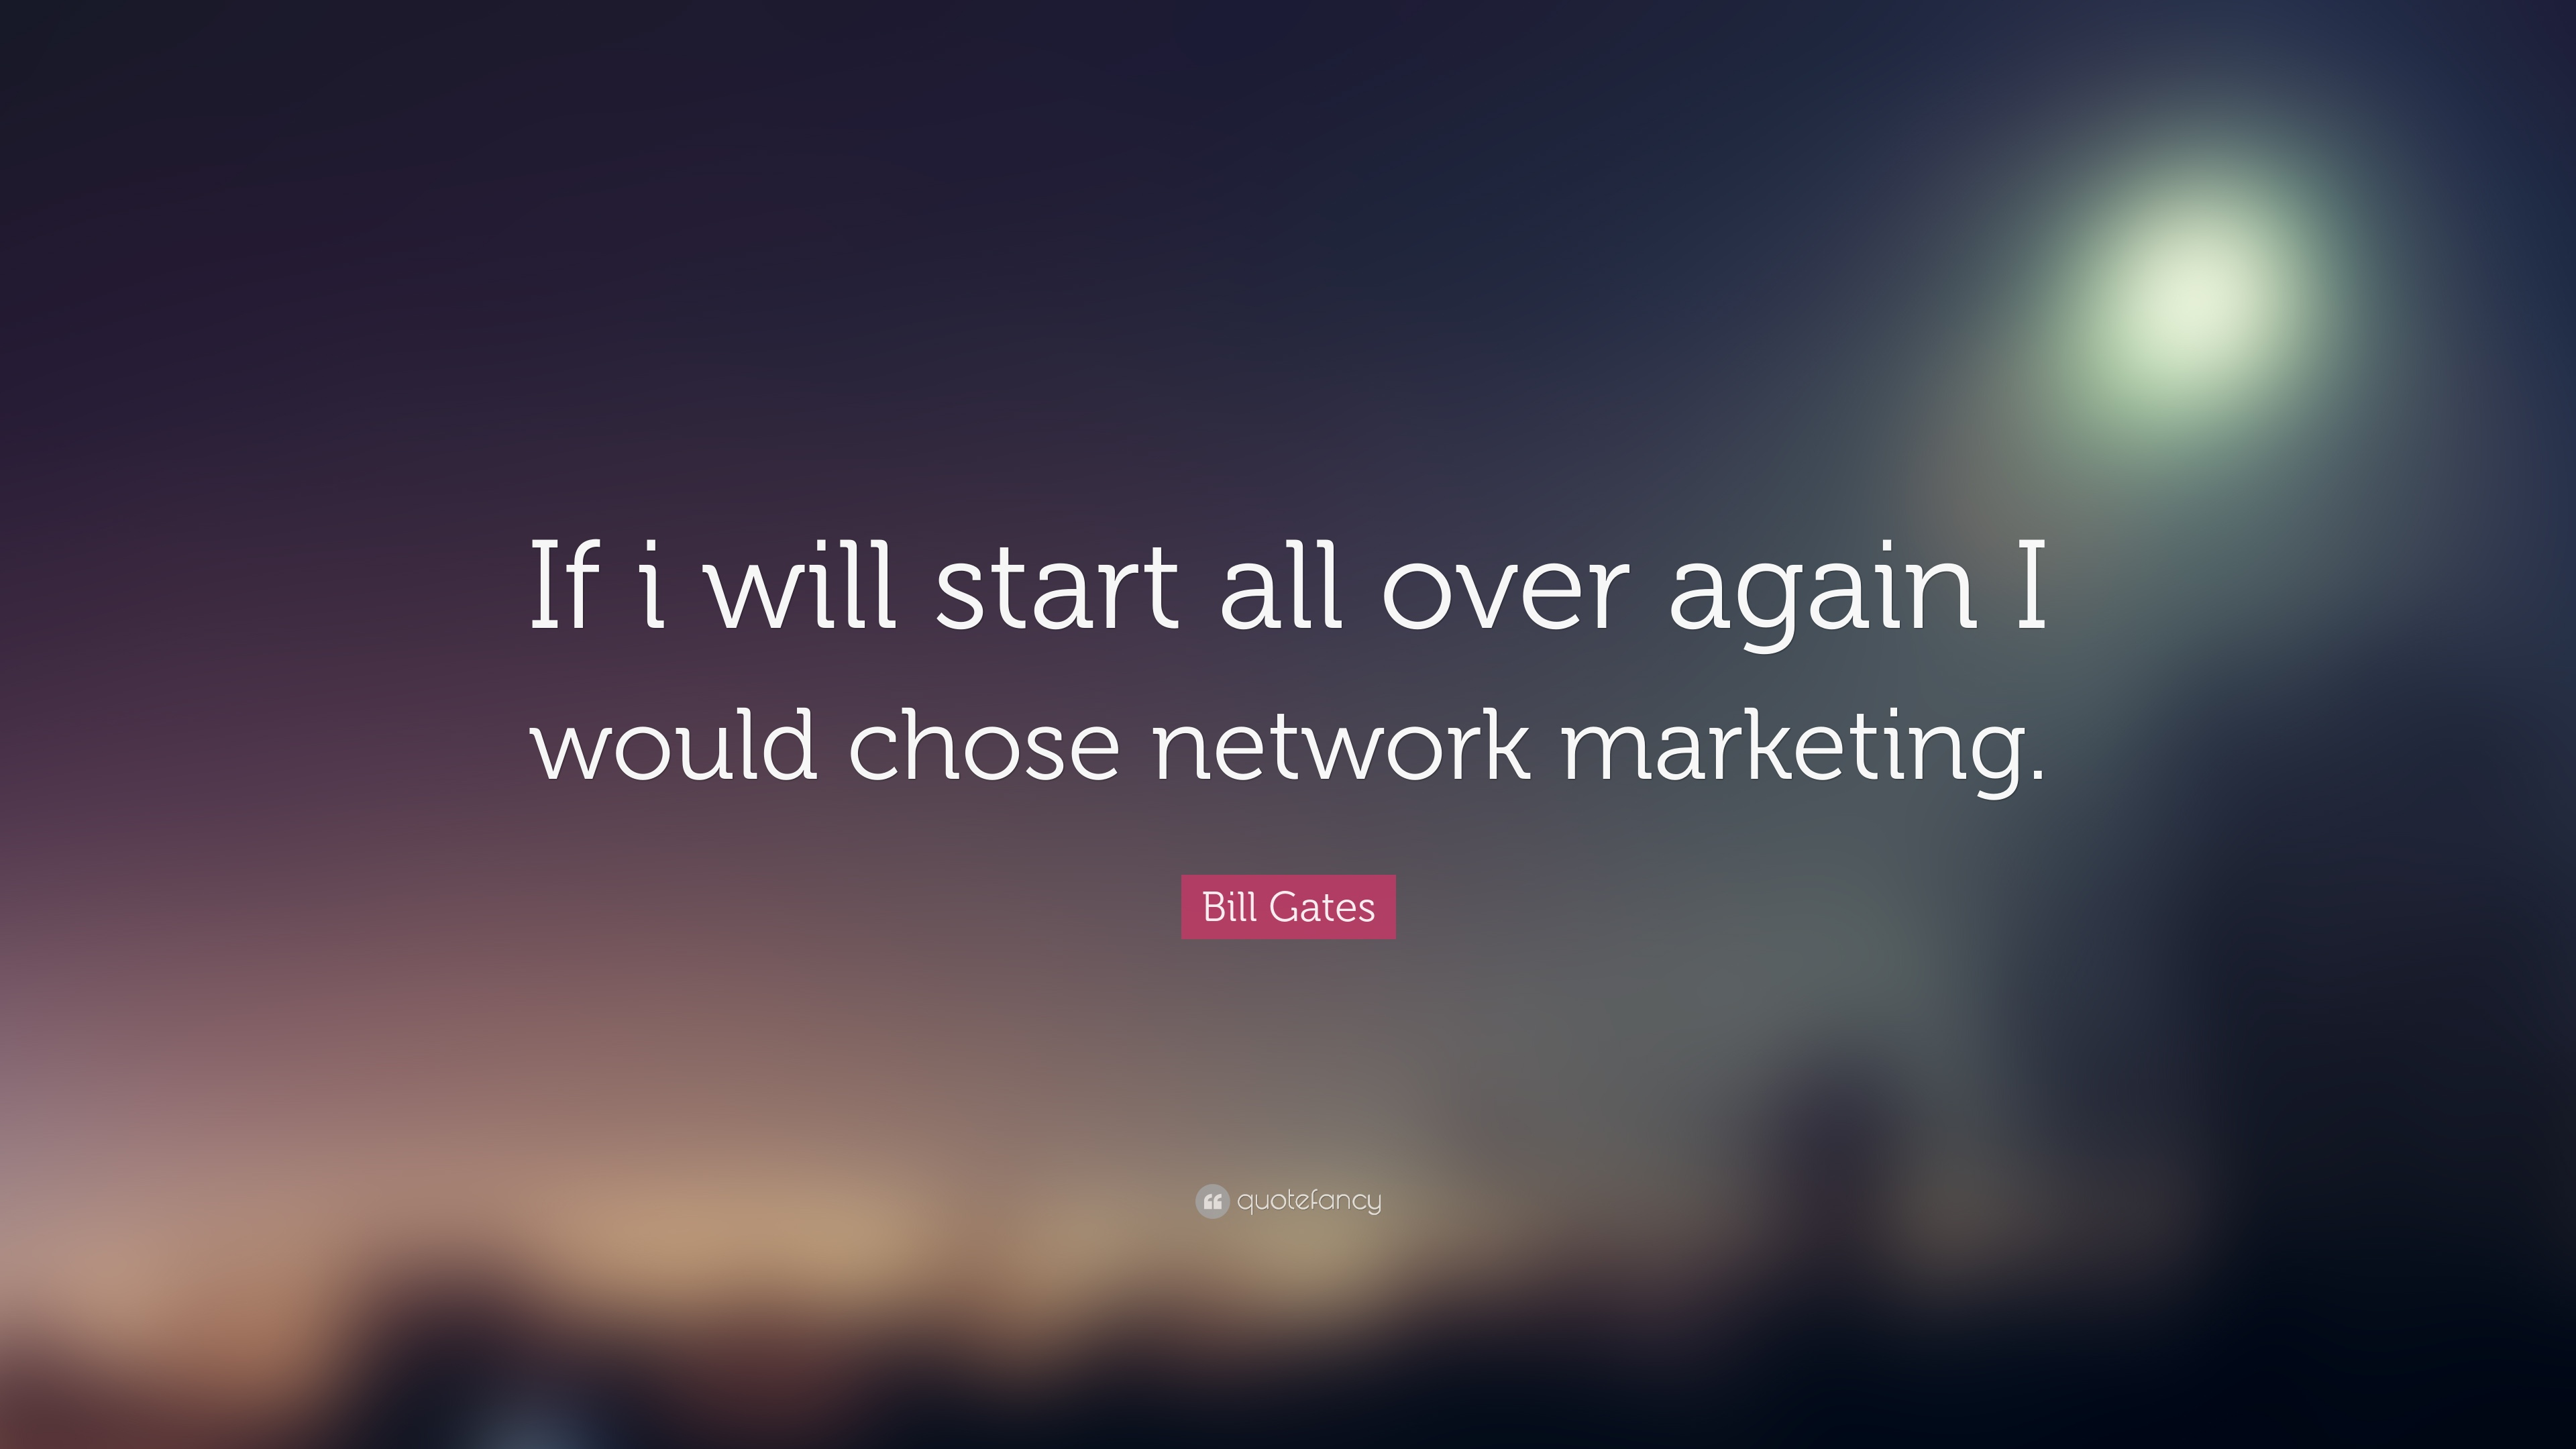 Bill Gates Quote: U201cIf I Will Start All Over Again I Would Chose Network